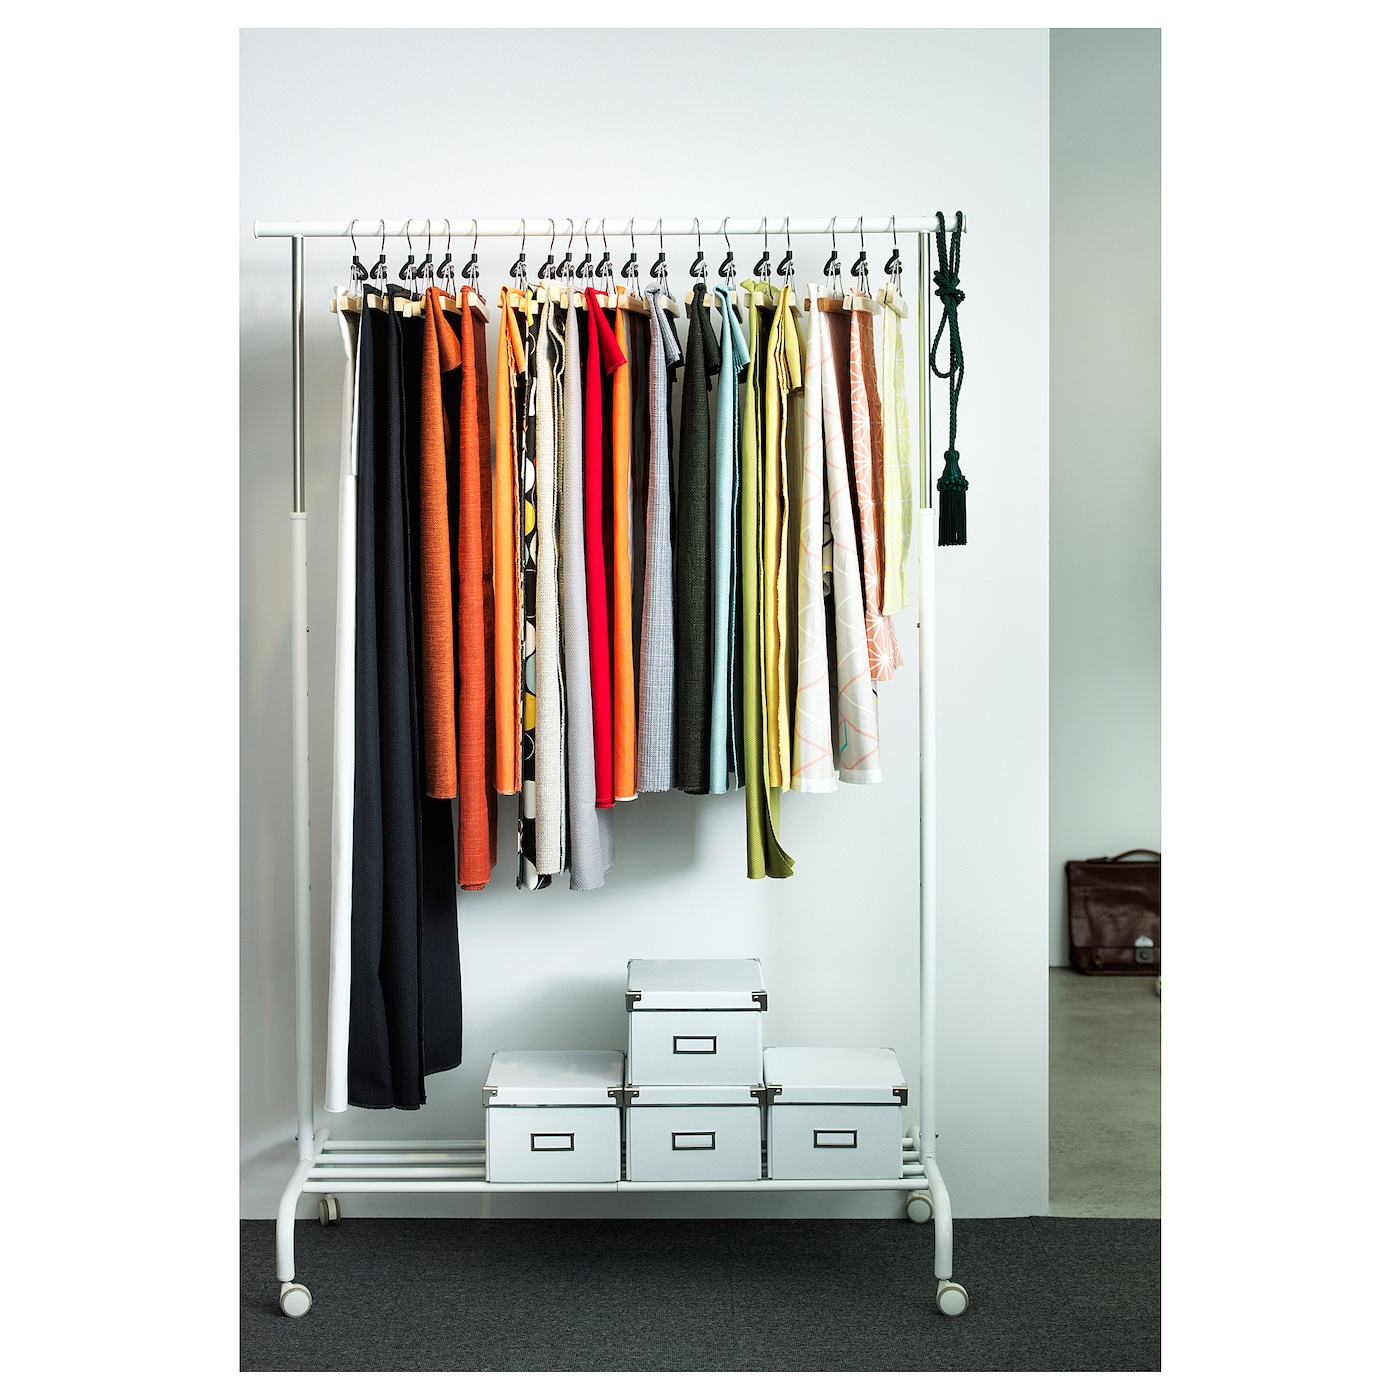 Ikea rigga clothes rack there is room for boxes or 4 pairs of shoes on the